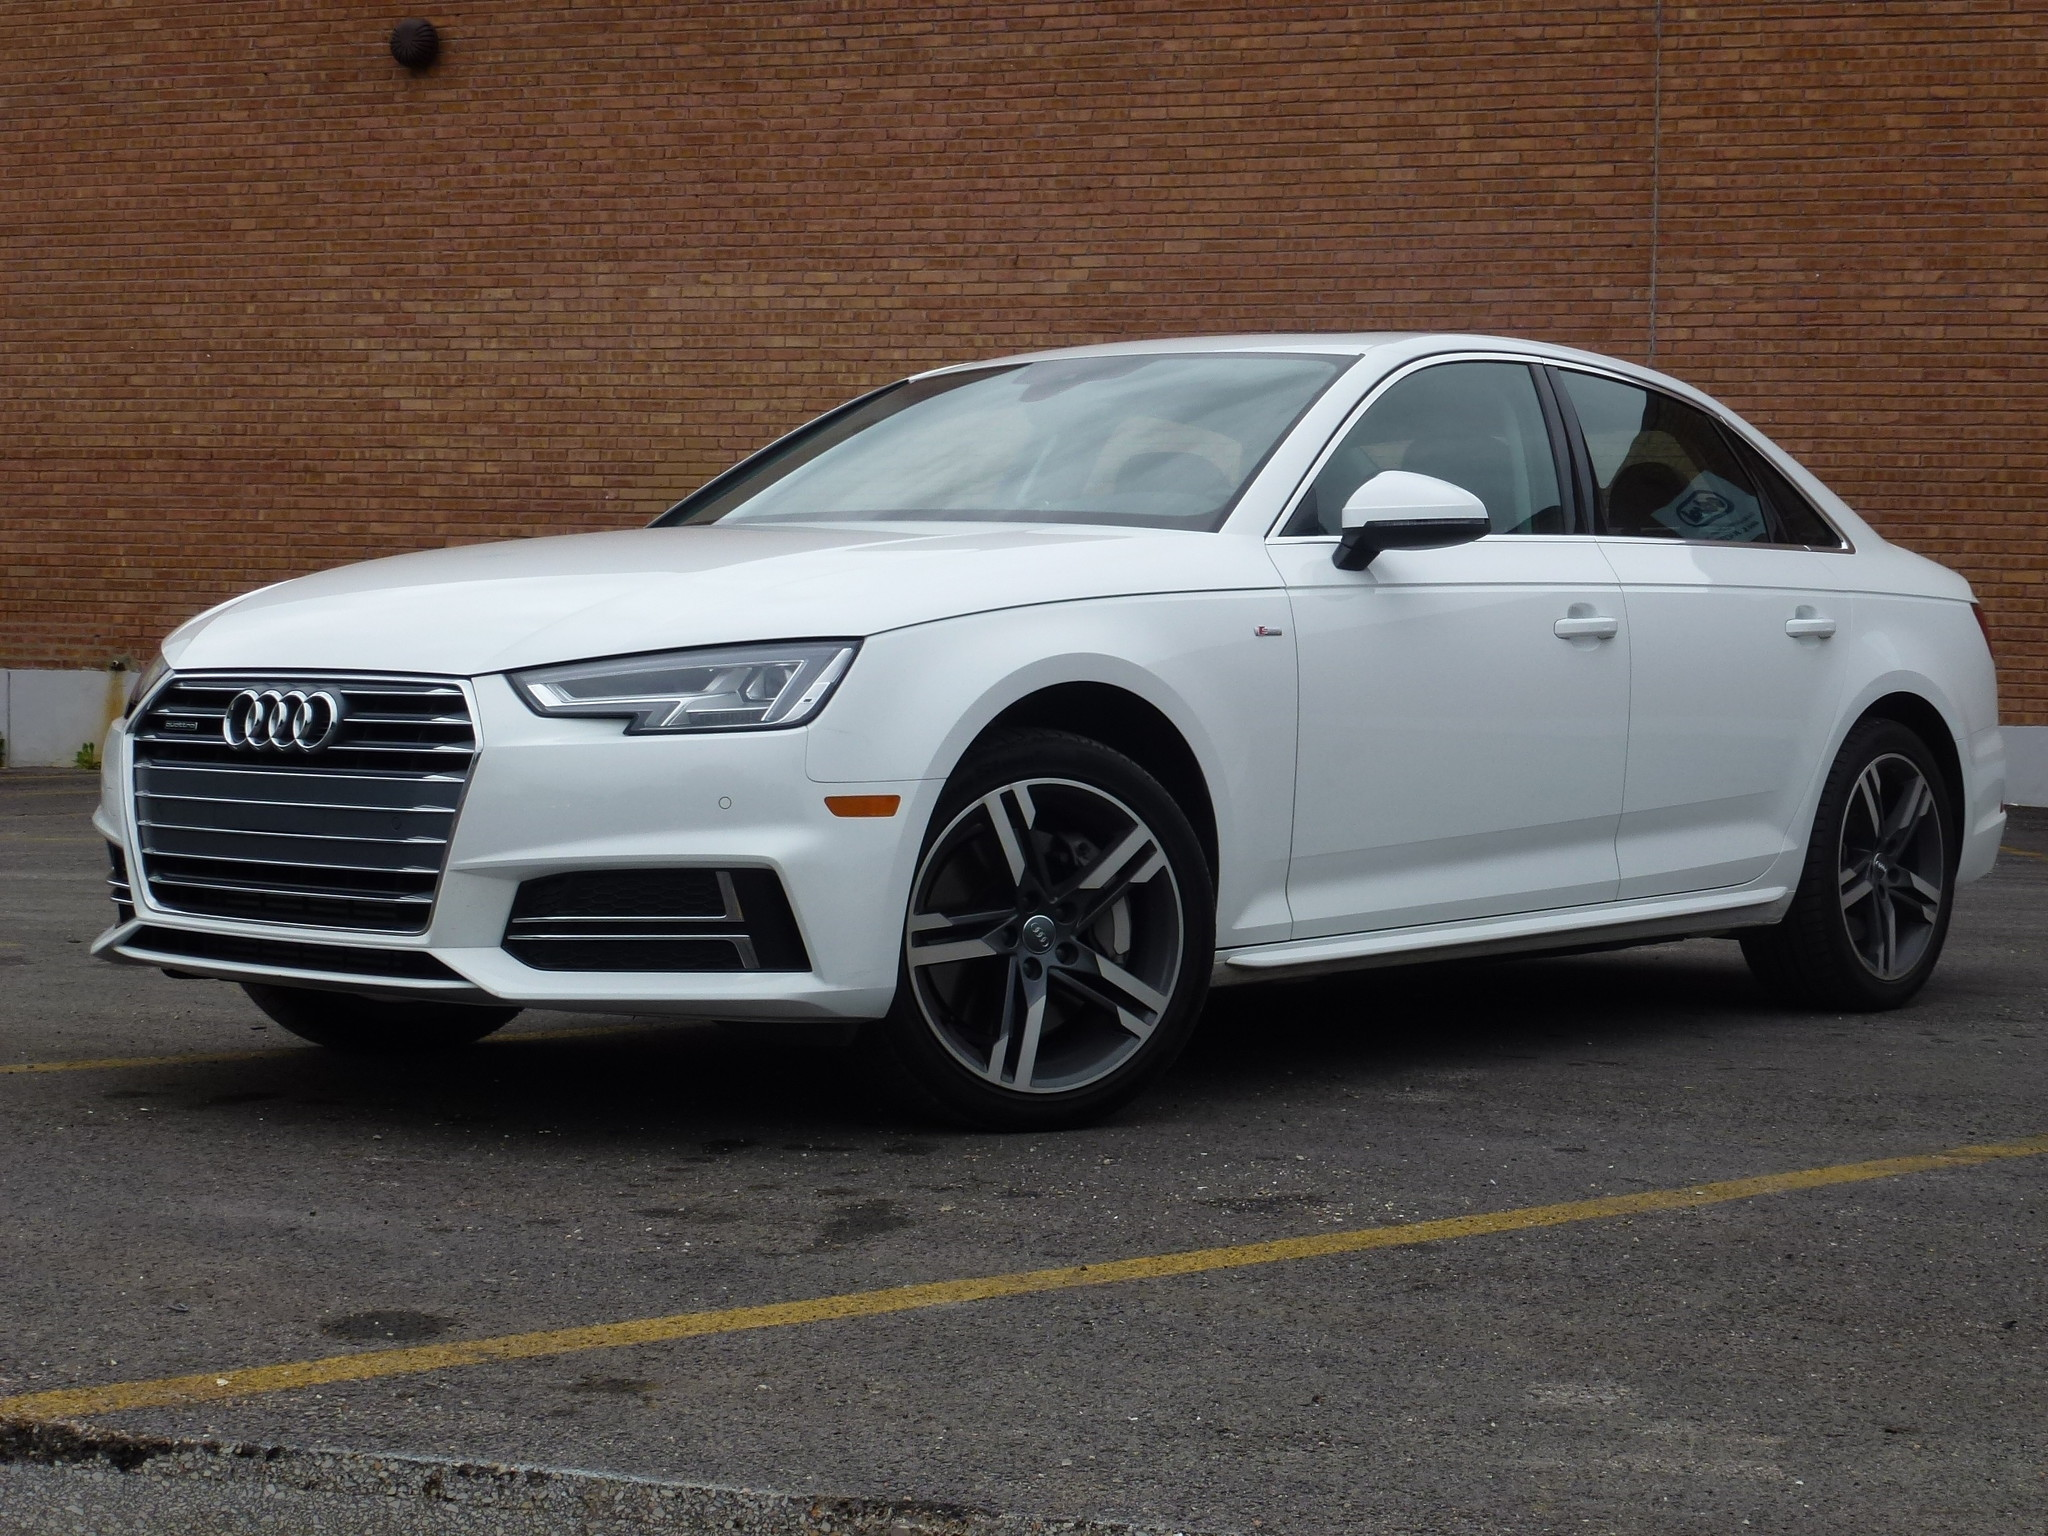 2017 A4 Review Audi S Best Ing Sedan Gets Subtle But Significant Redesign Car Reviews